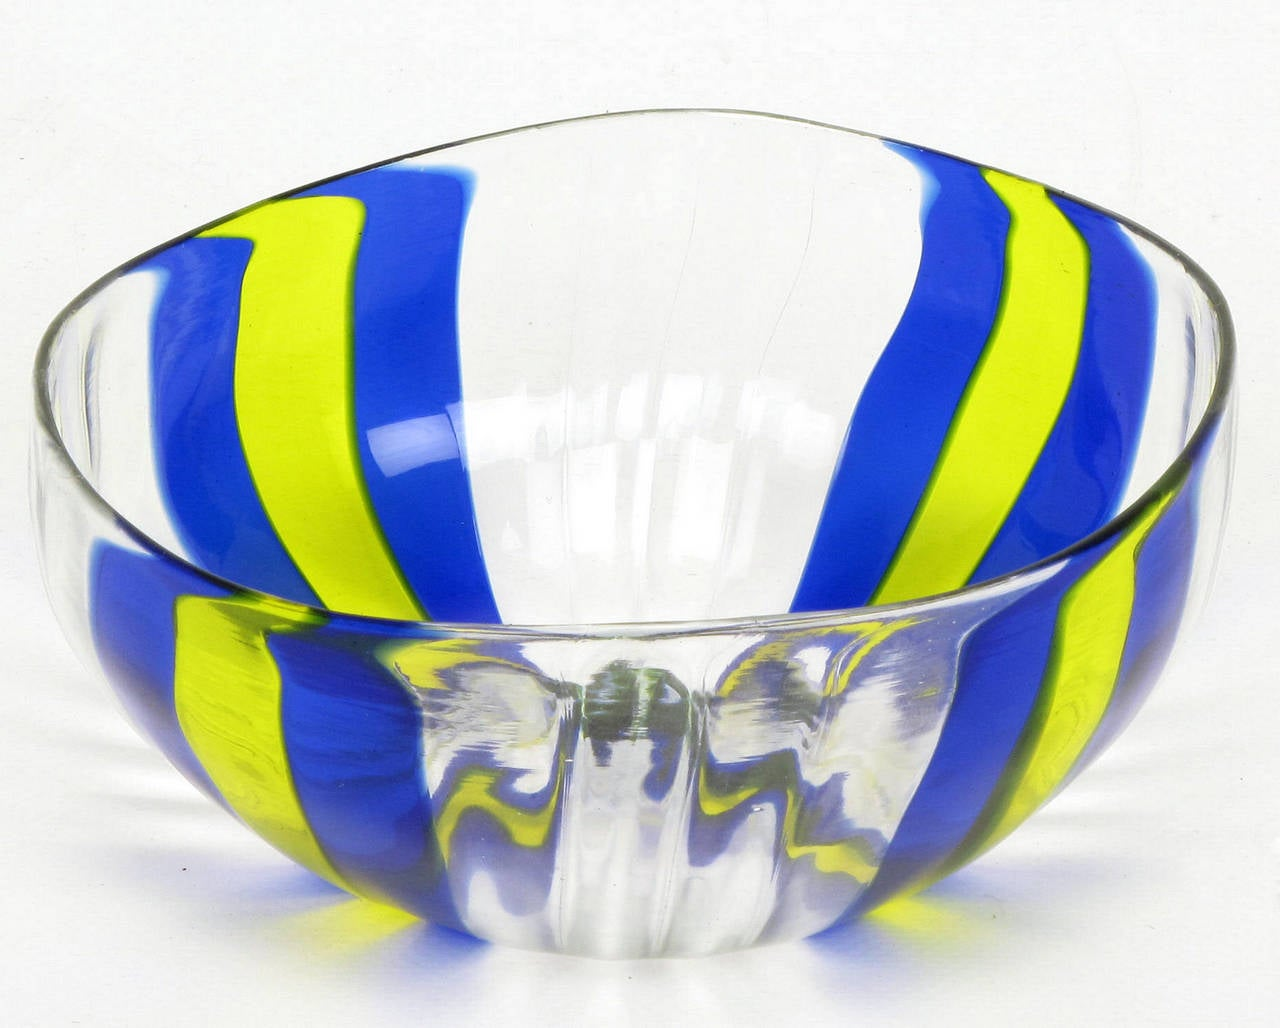 Italian handblown art glass vase with bowl by oggetti for sale at handblown art glass vase measuring 9 tall x 8 diameter in yellow blue reviewsmspy